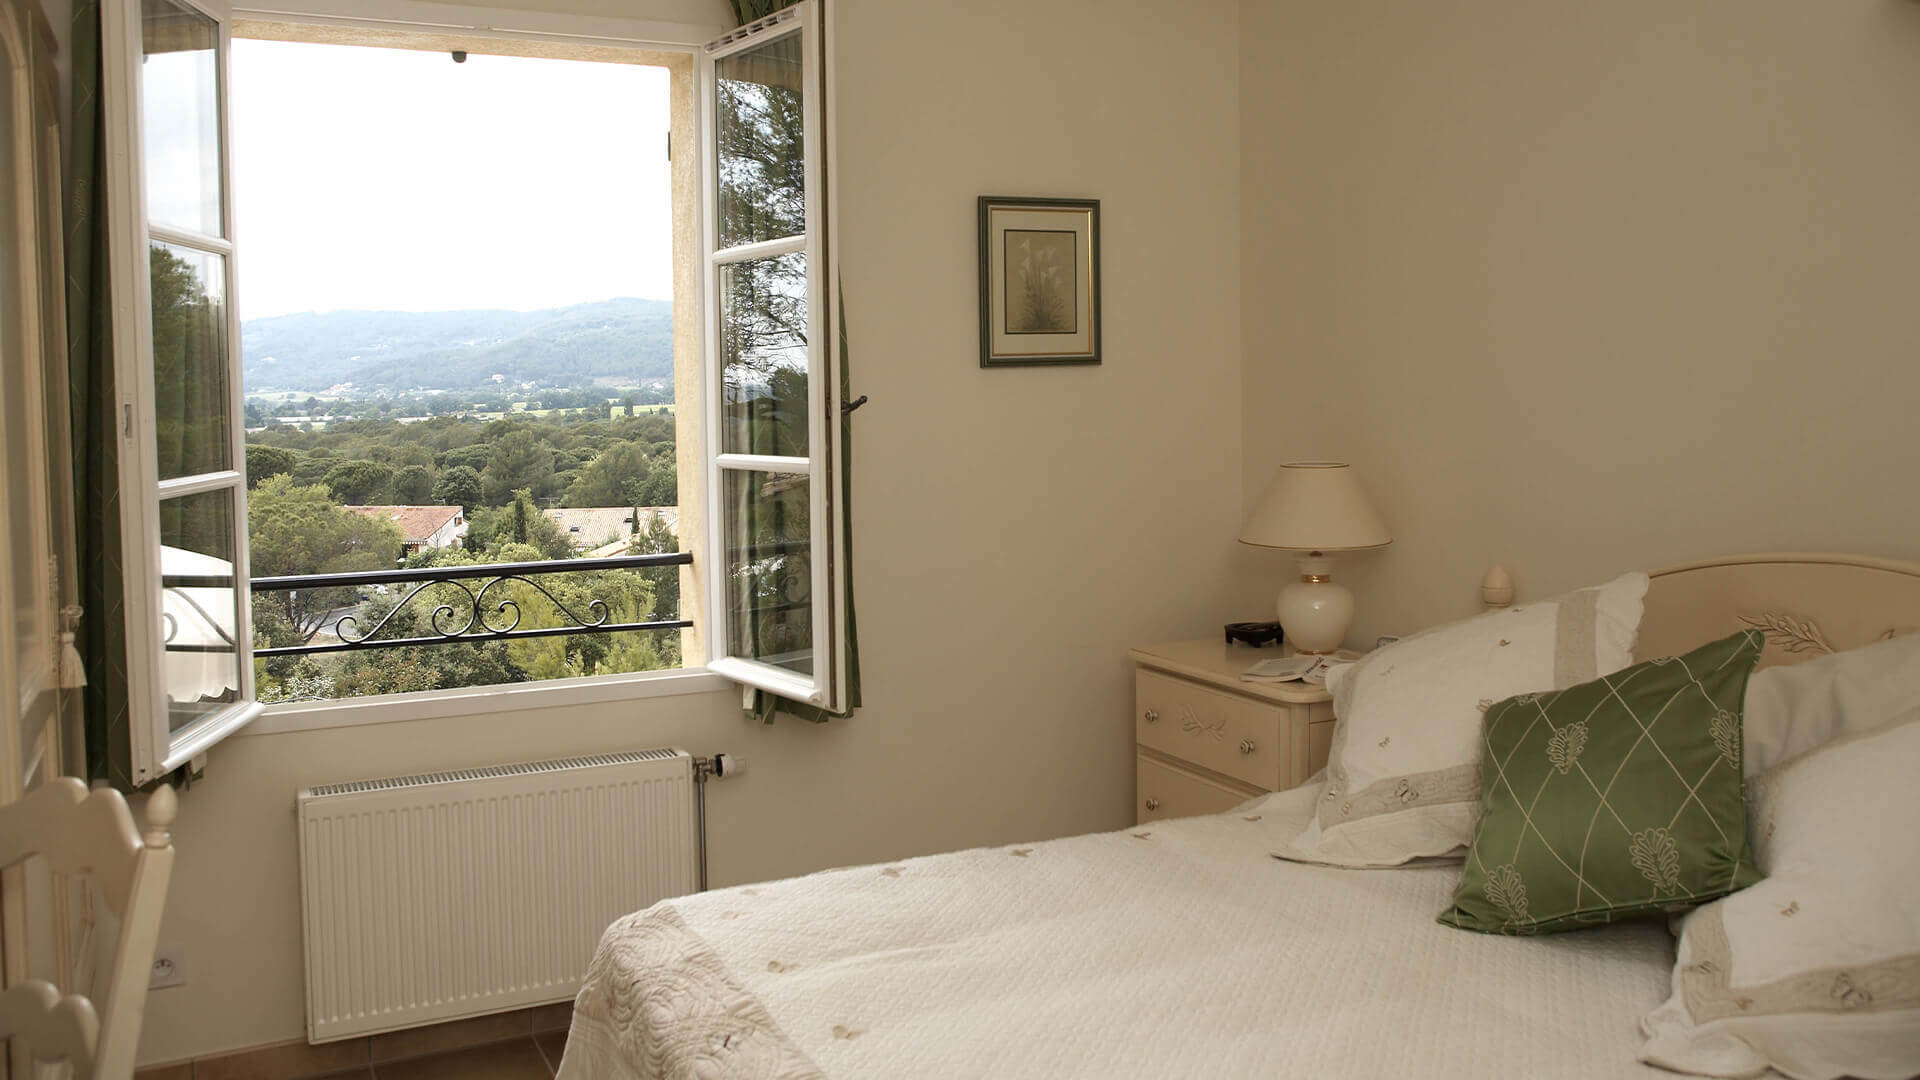 Provence golf and Spa bedroom with view